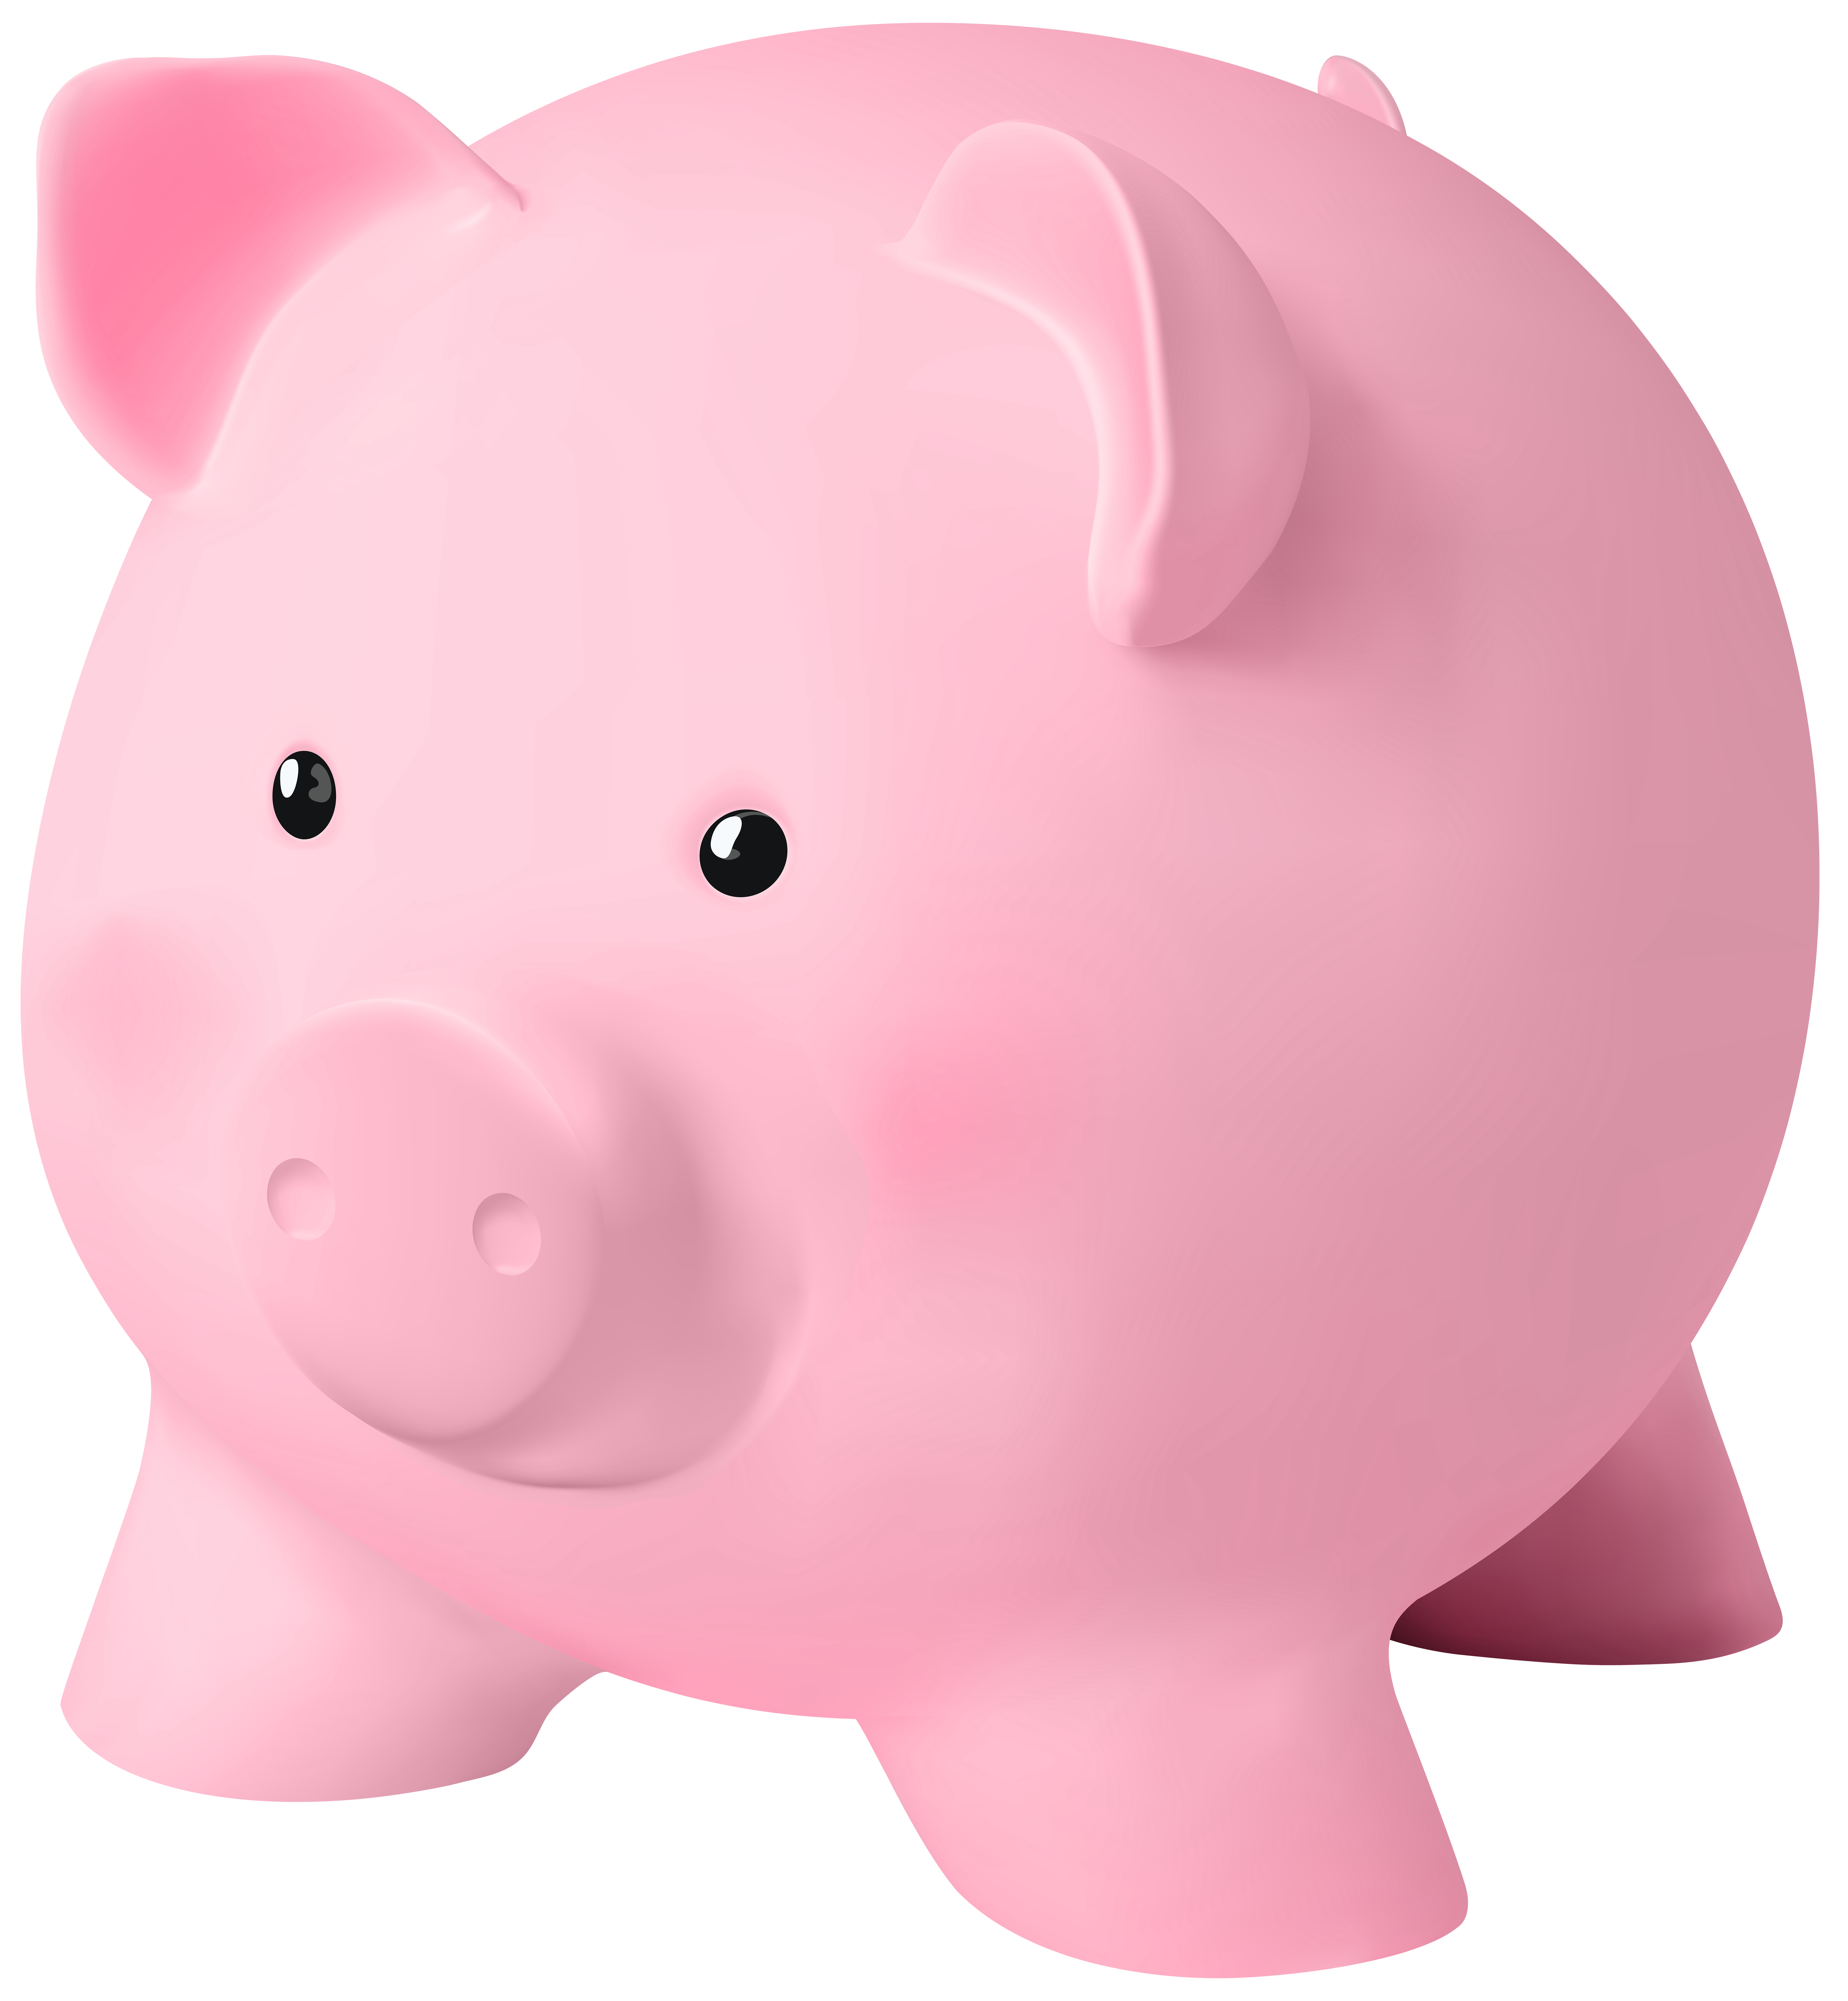 Piggy bank clipart images clip art royalty free stock Piggy bank Icon - Piggy Bank PNG Clip Art Image 7390*8000 transprent ... clip art royalty free stock